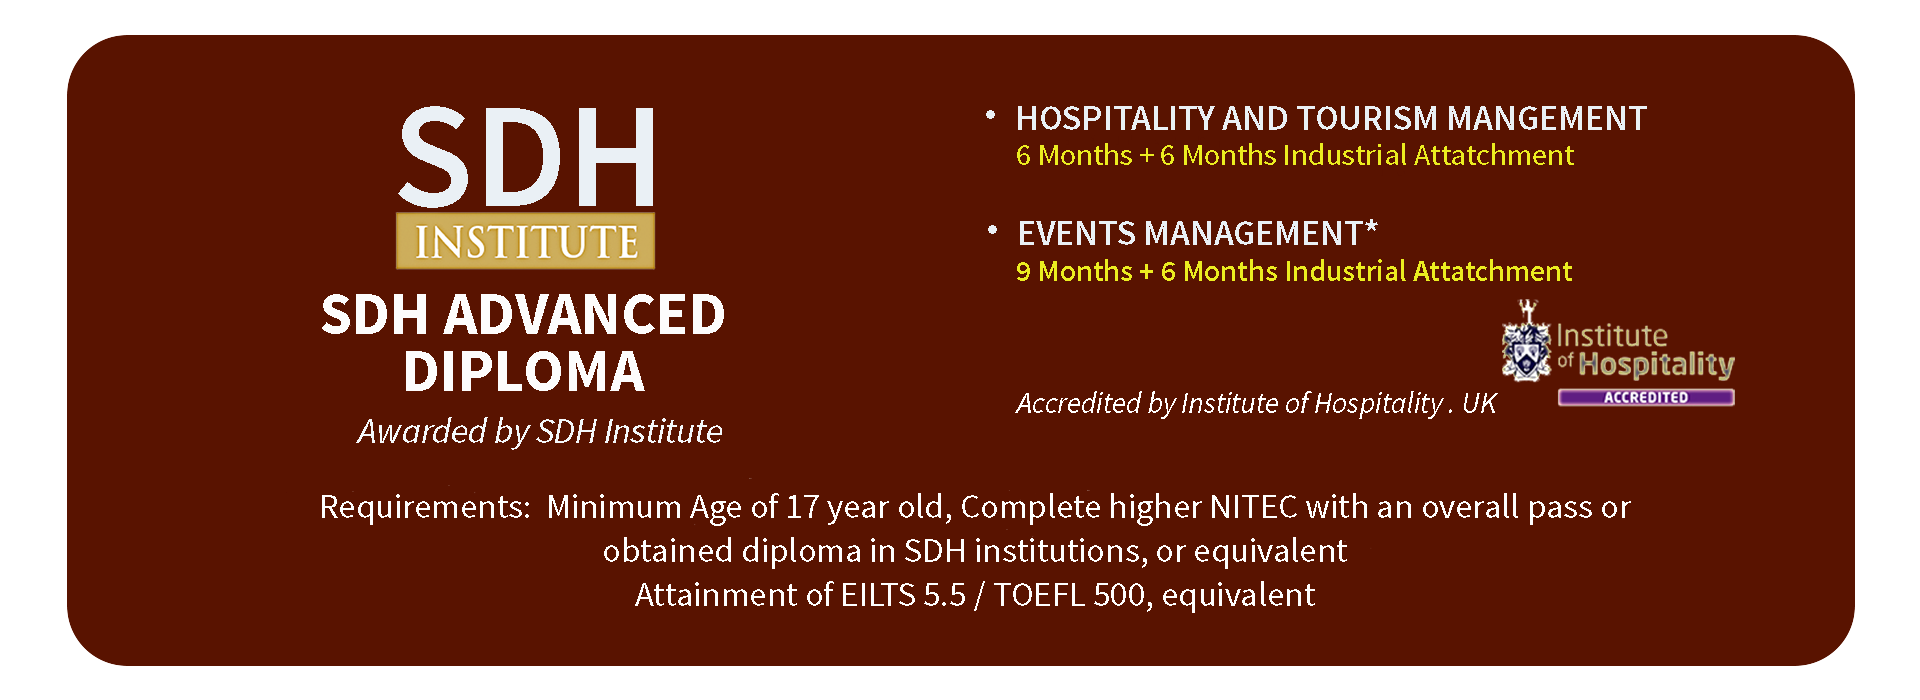 sdh-advanced-diploma